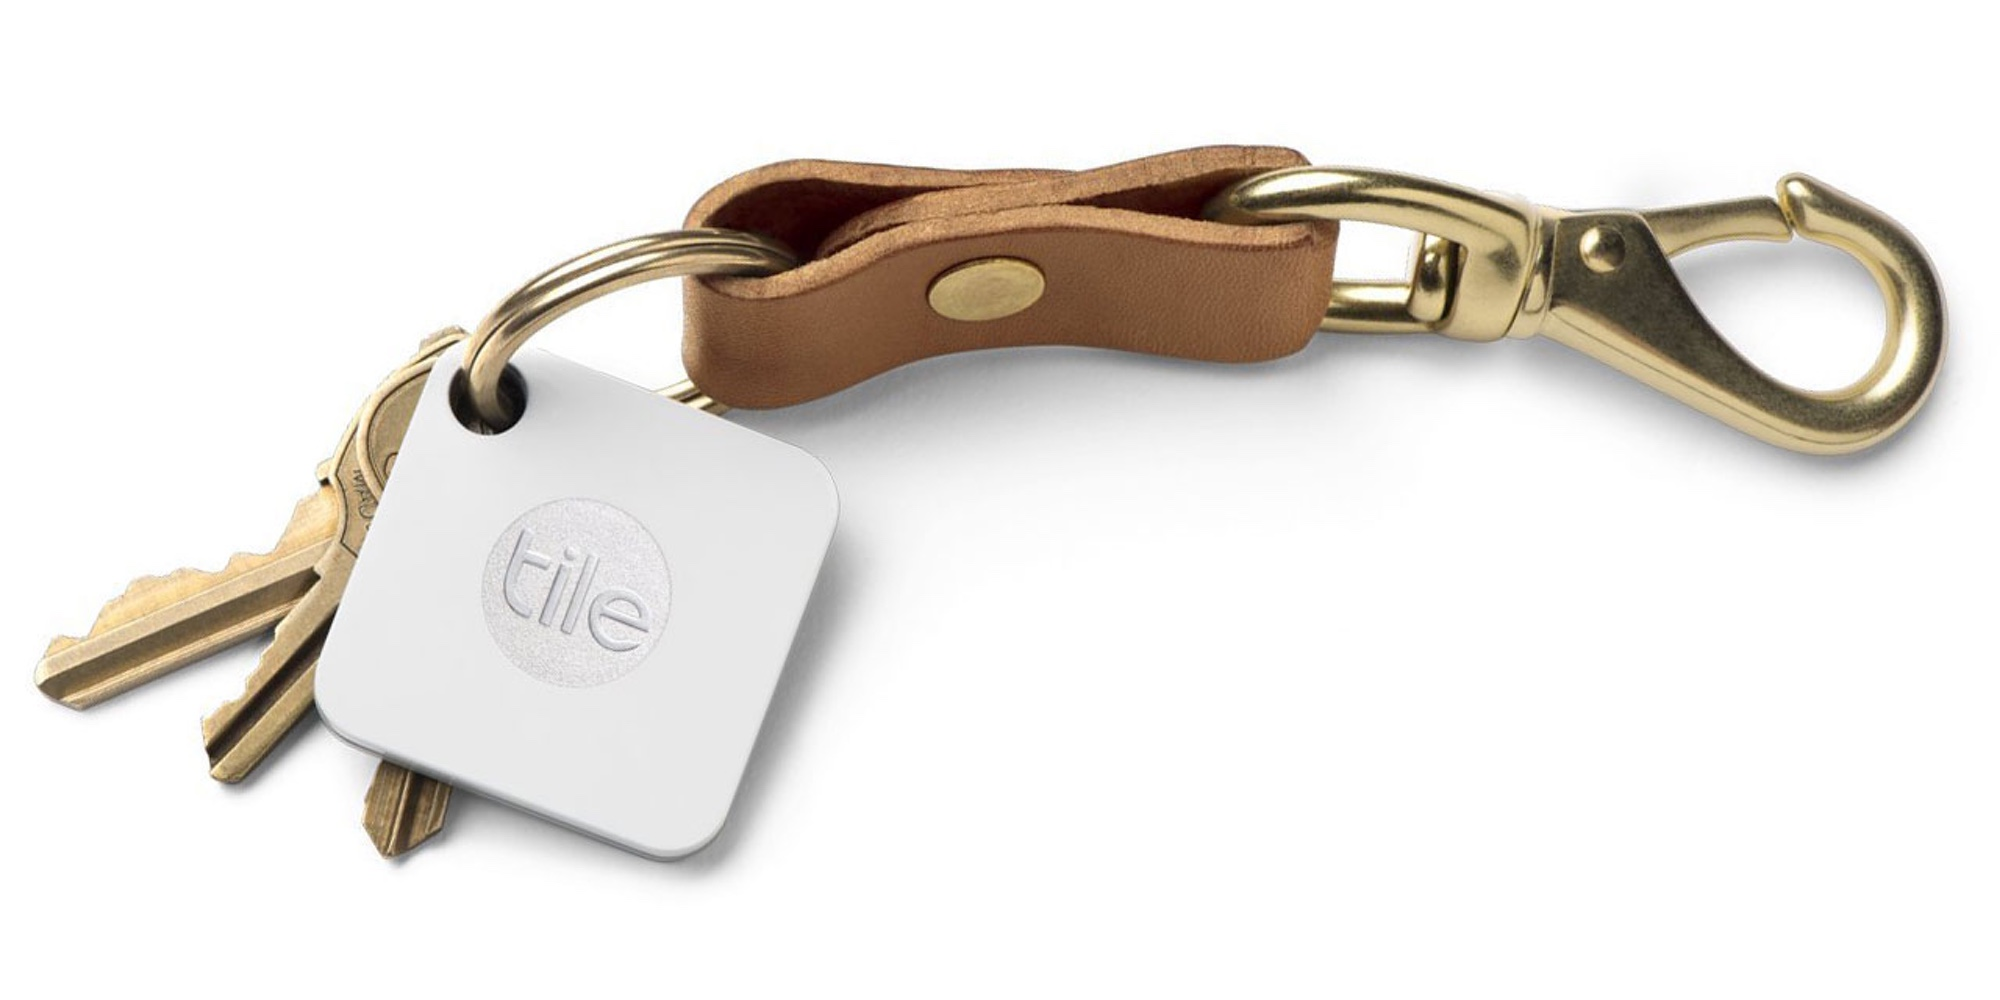 At Just 10 Shipped Everyone Needs The Tile Mate